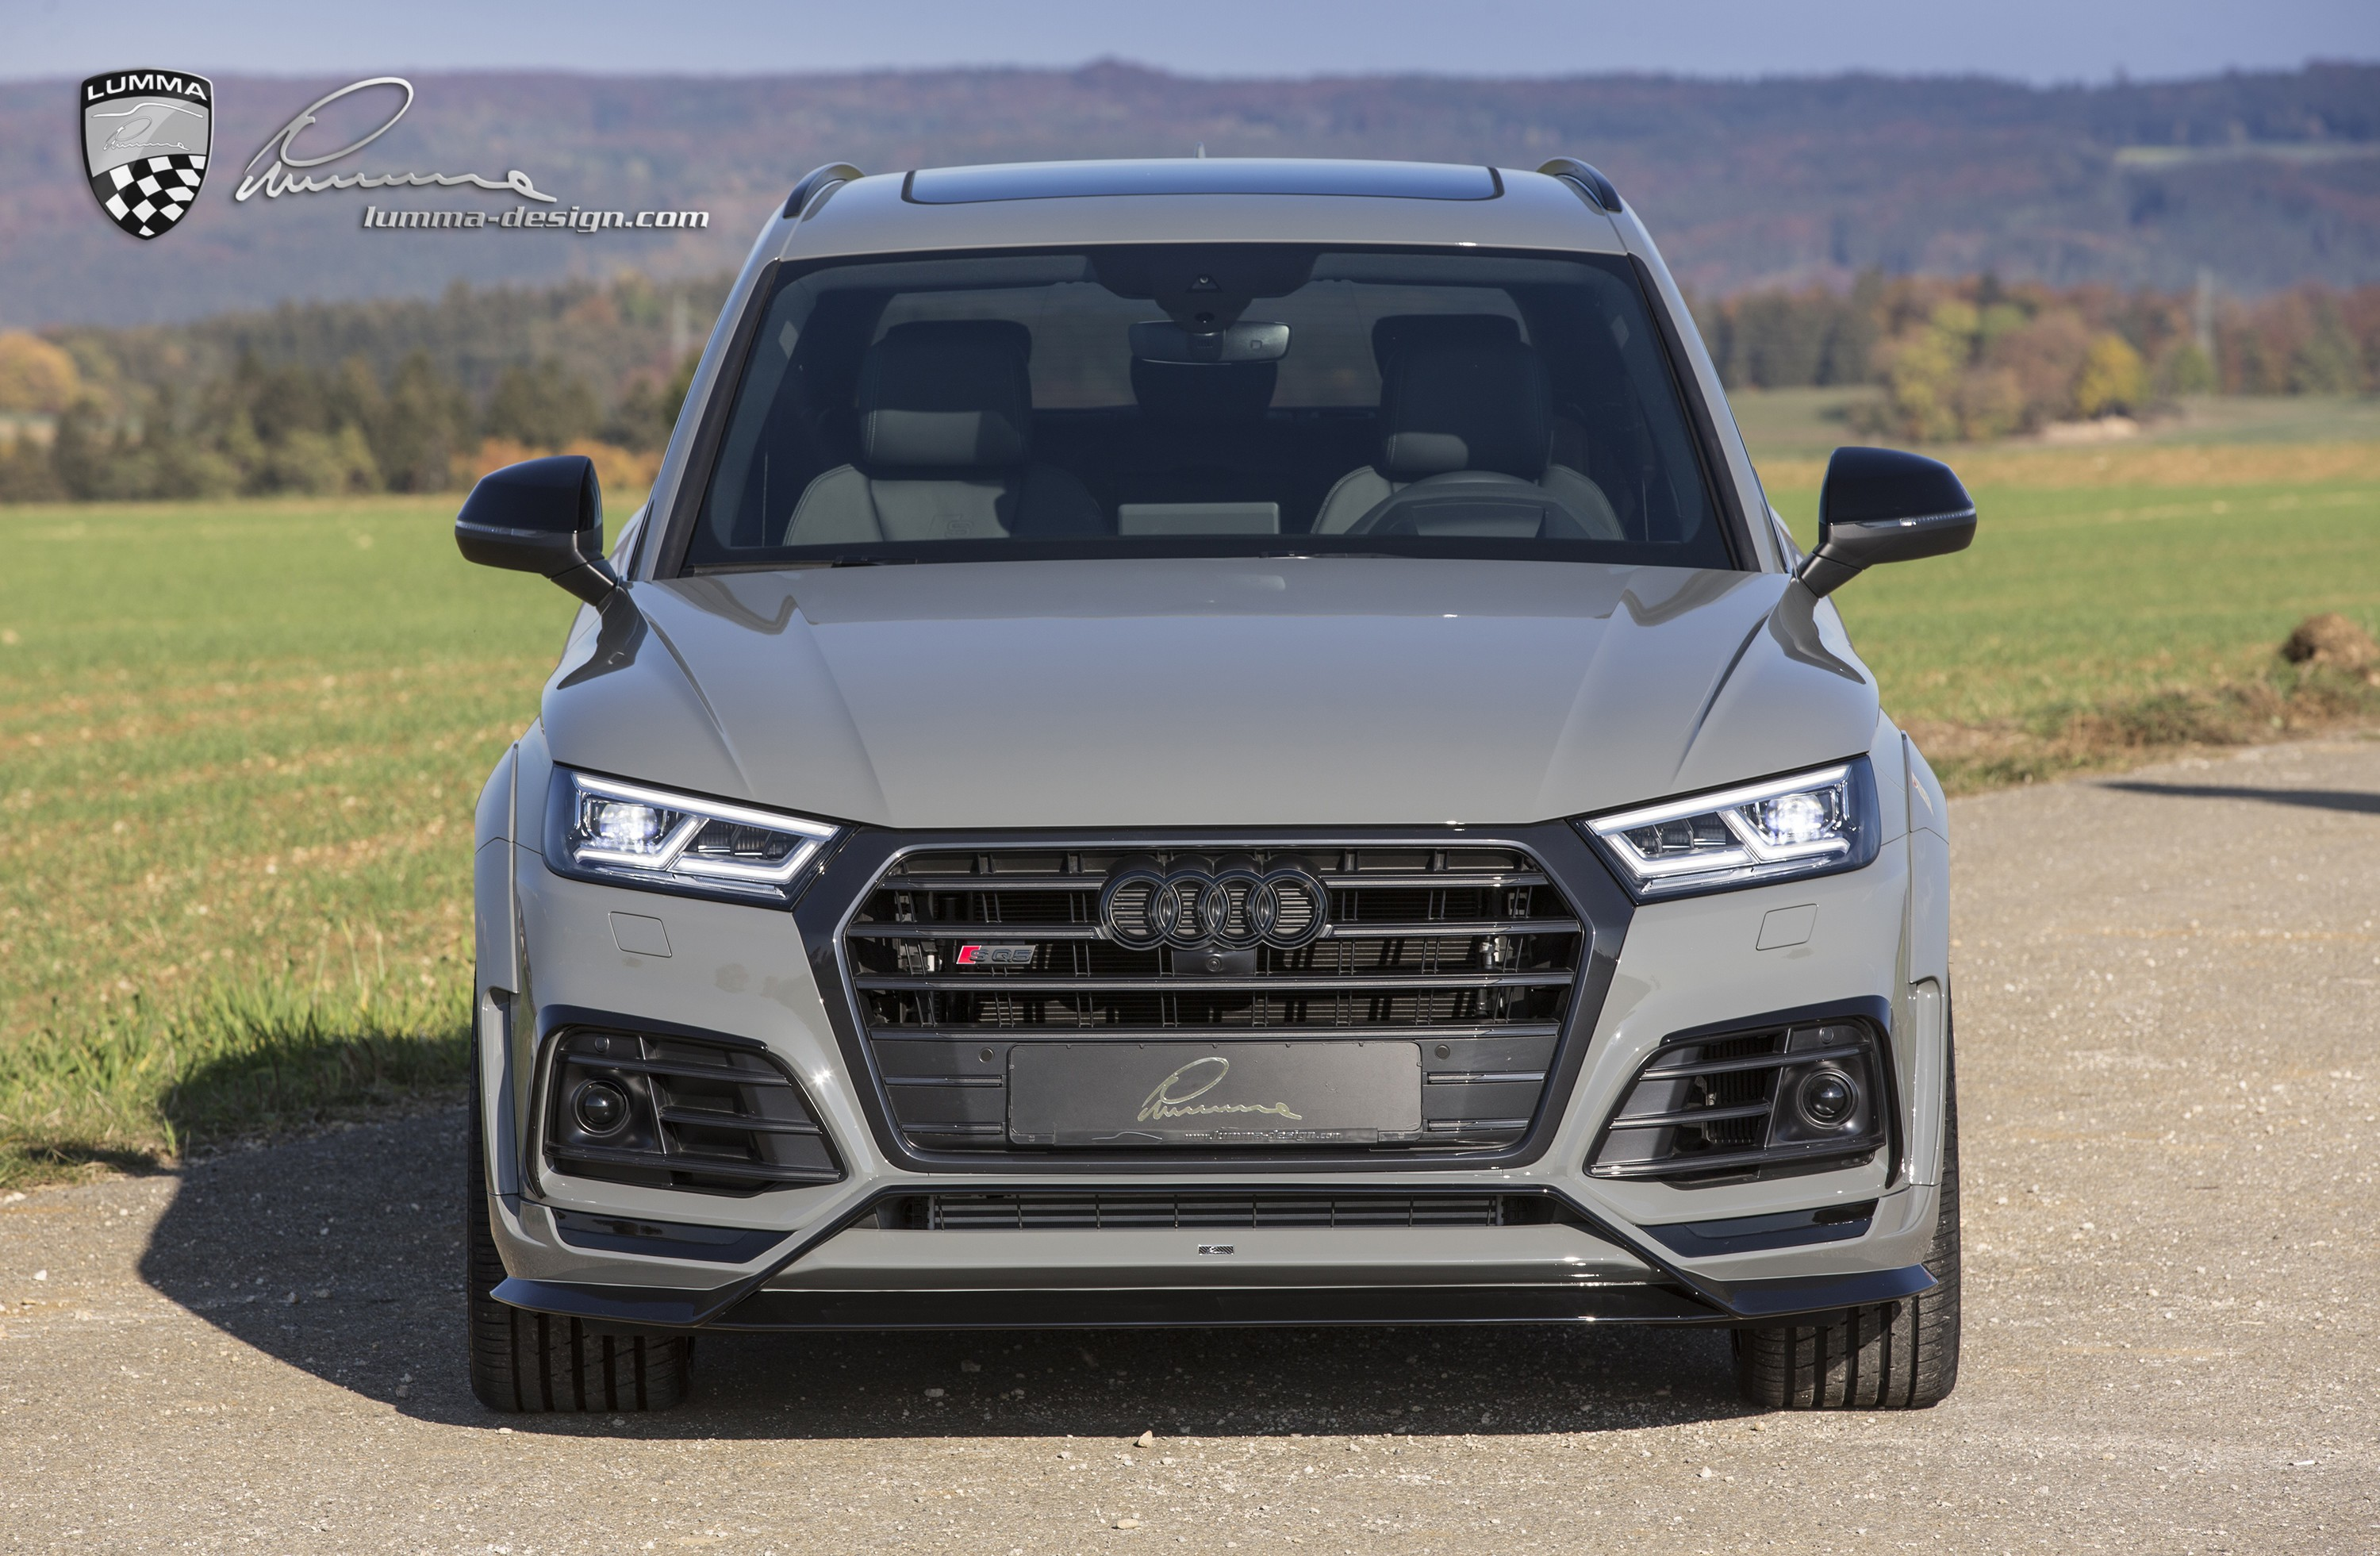 Lumma CLR 5S Body Kit for Audi SQ5 Is as Wide as Q7